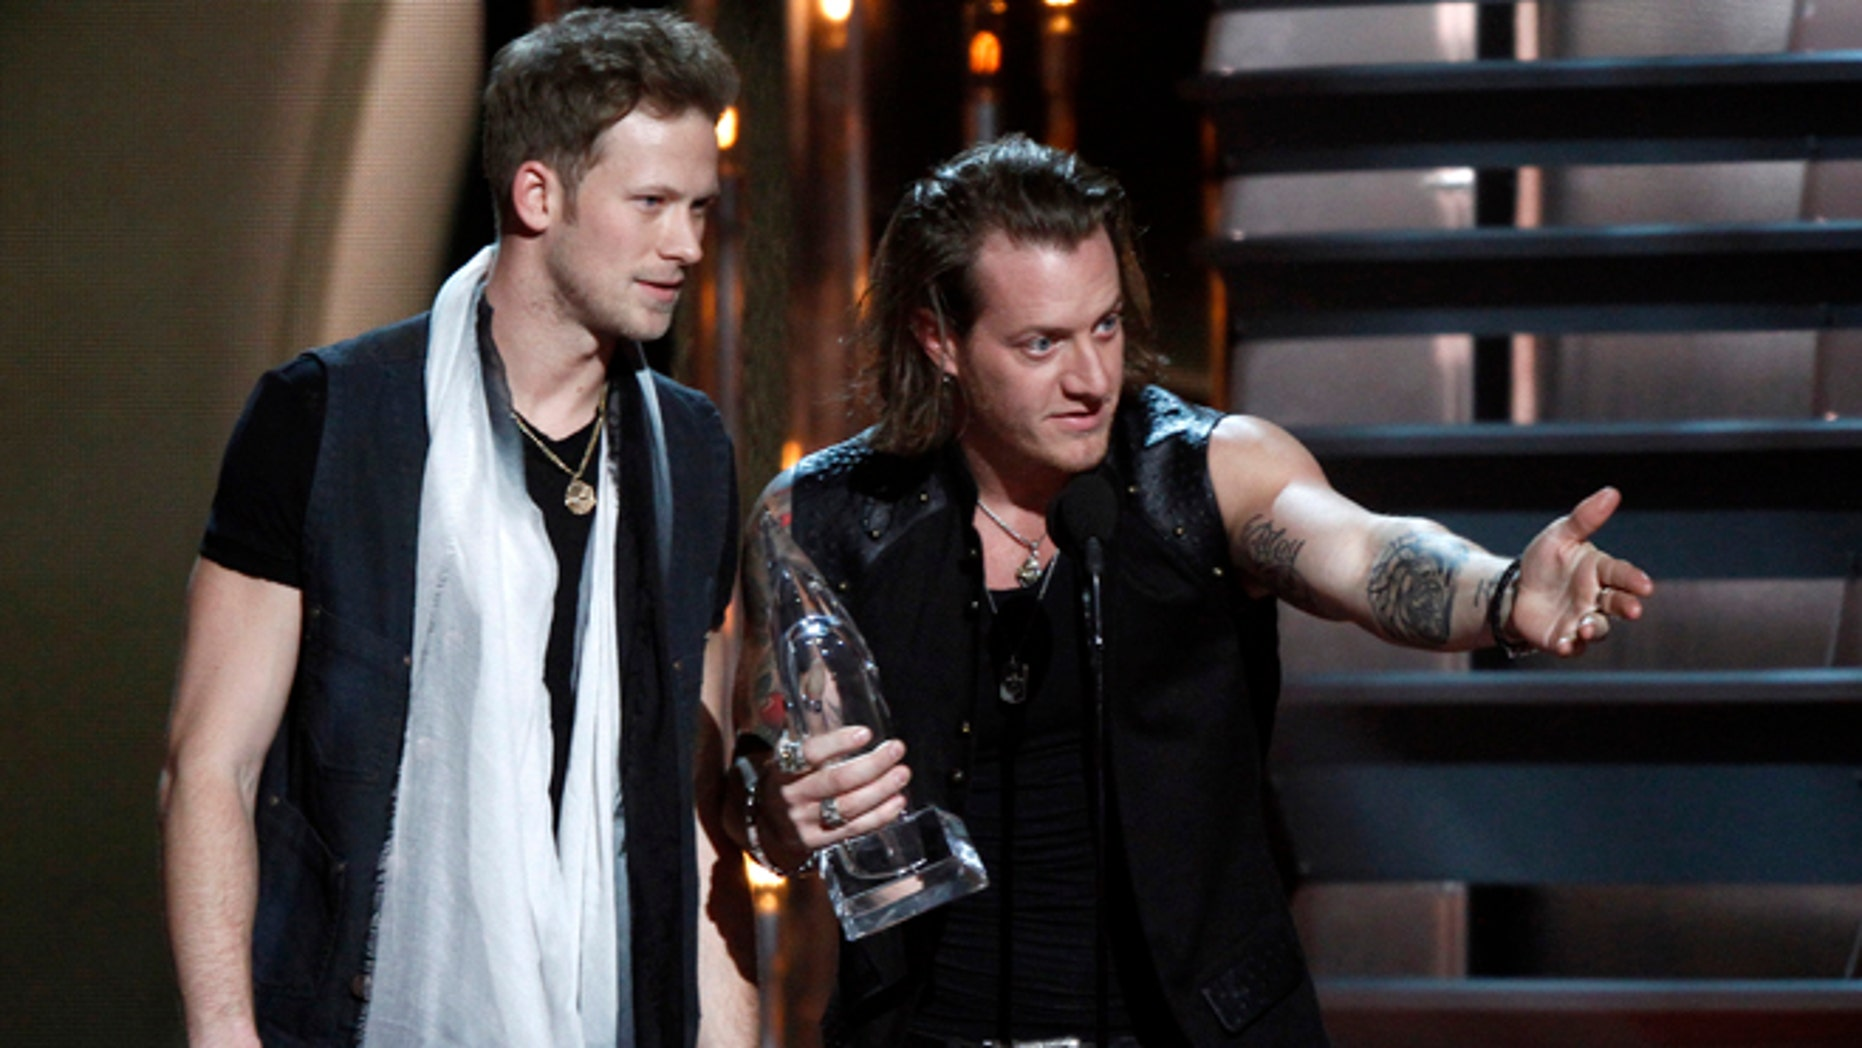 Nov. 6, 2013: Brian Kelley, left, and Tyler Hubbard, of Florida Georgia Line, accept the award for vocal duo of the year at the 47th annual CMA Awards at Bridgestone Arena in Nashville, Tenn.